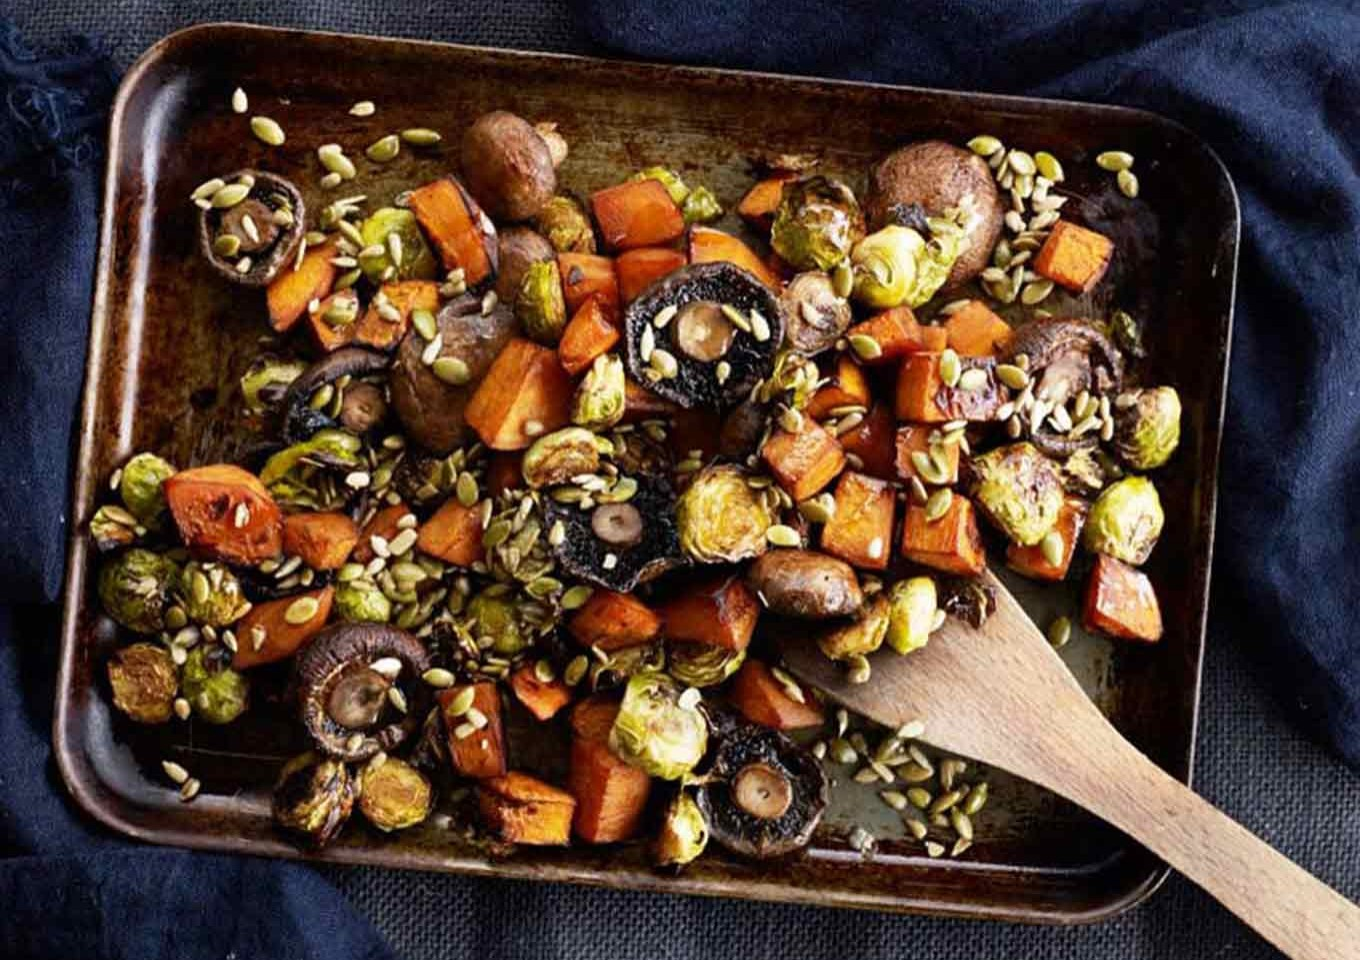 Pan roasted mushroom, pumpkin & Brussels sprouts with seeds